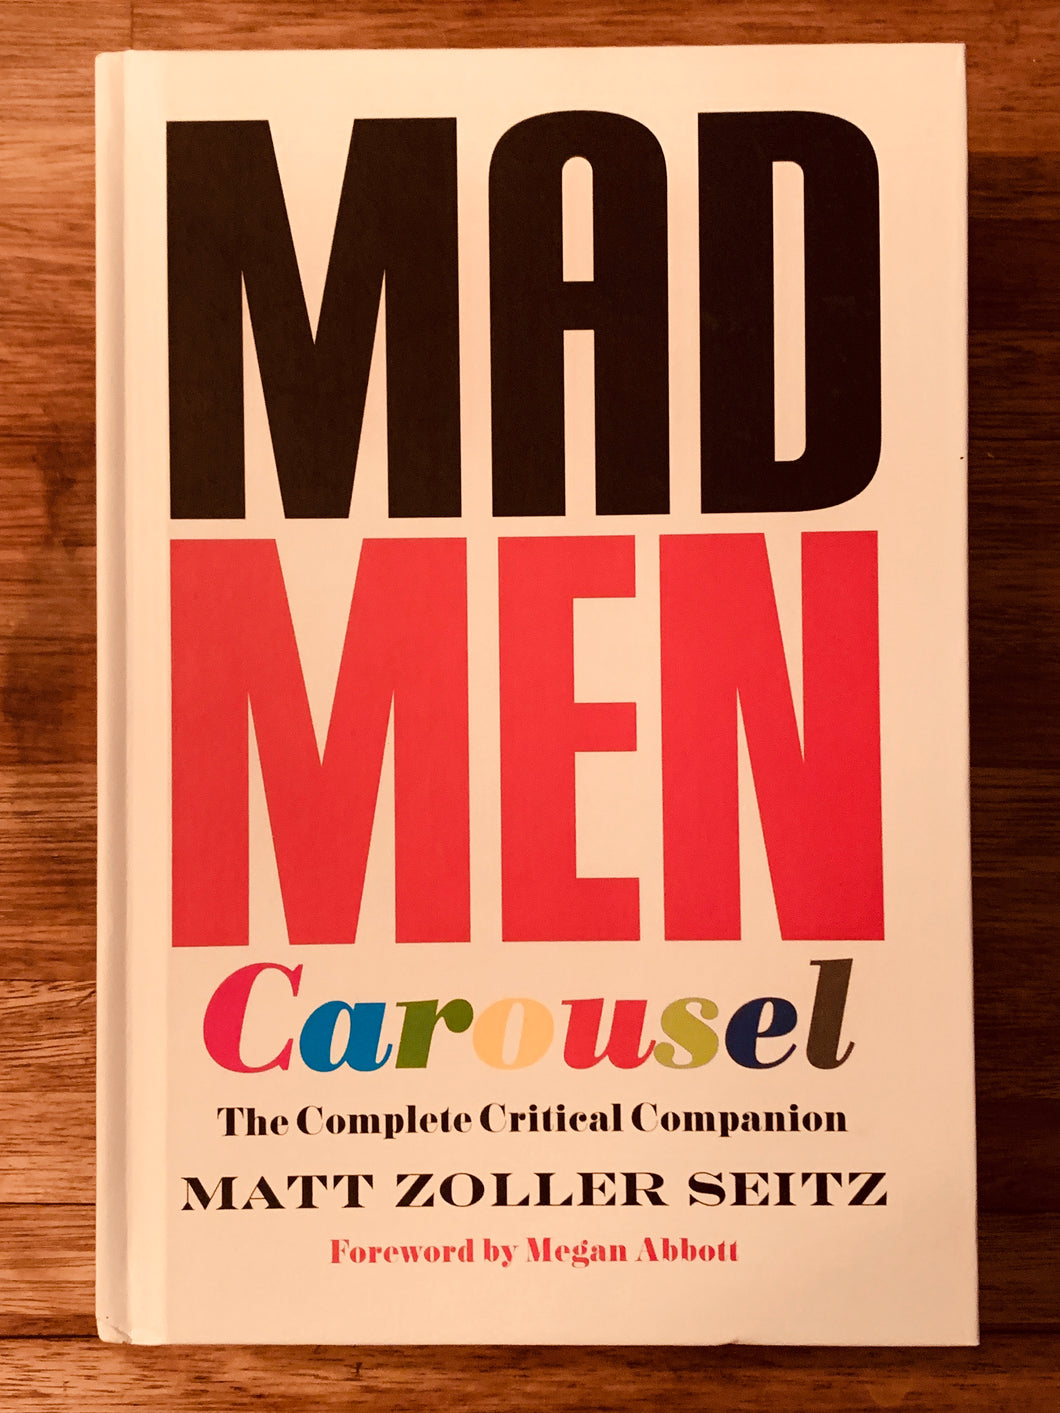 Mad Men Carousel: The Complete Critical Companion (Case Cover, signed by MZS)